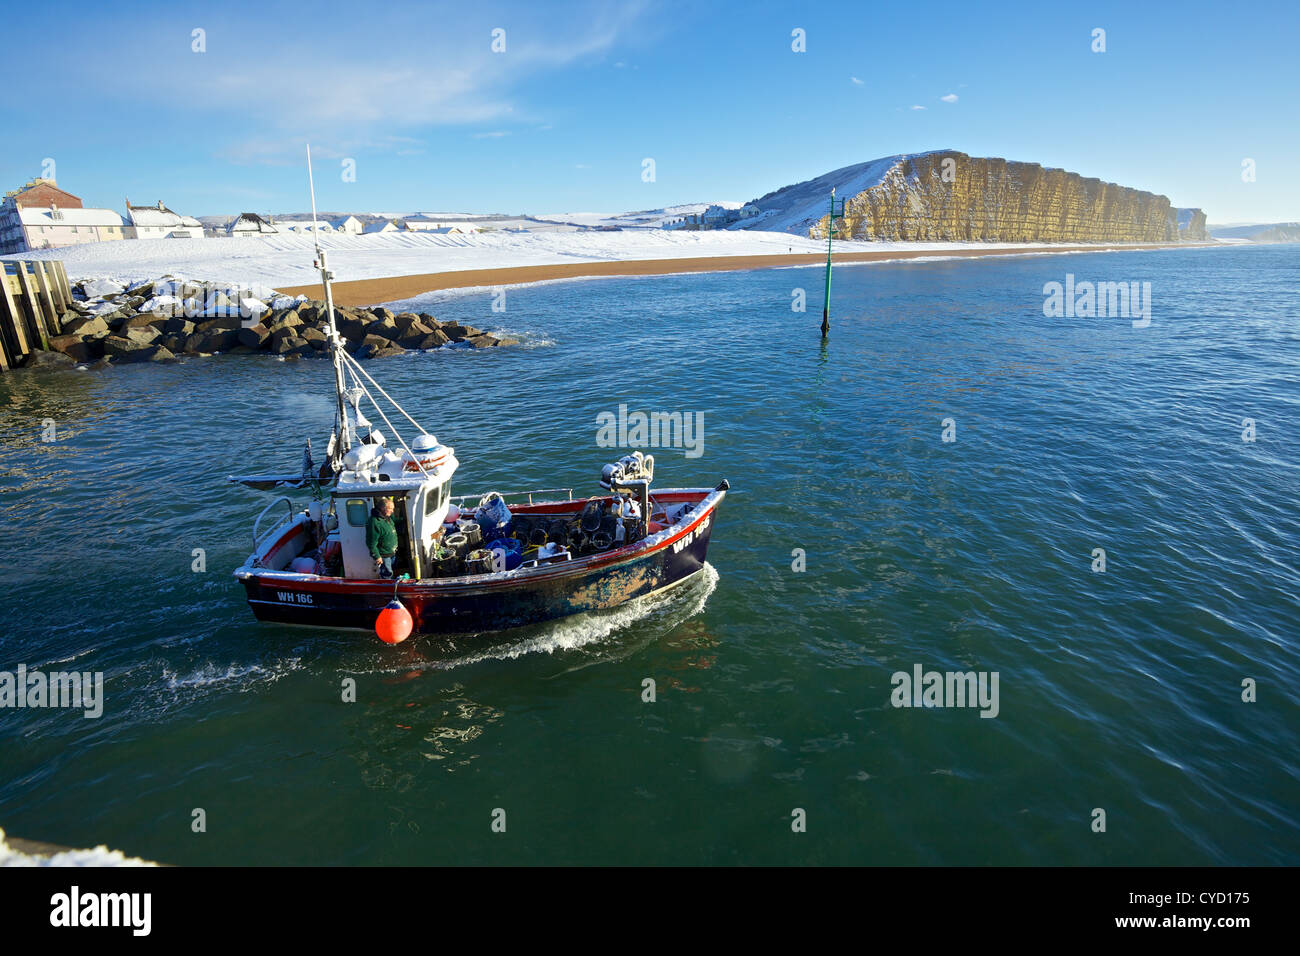 A fishing boat leaves West Bay Harbour, after snow covers the beach - Stock Image